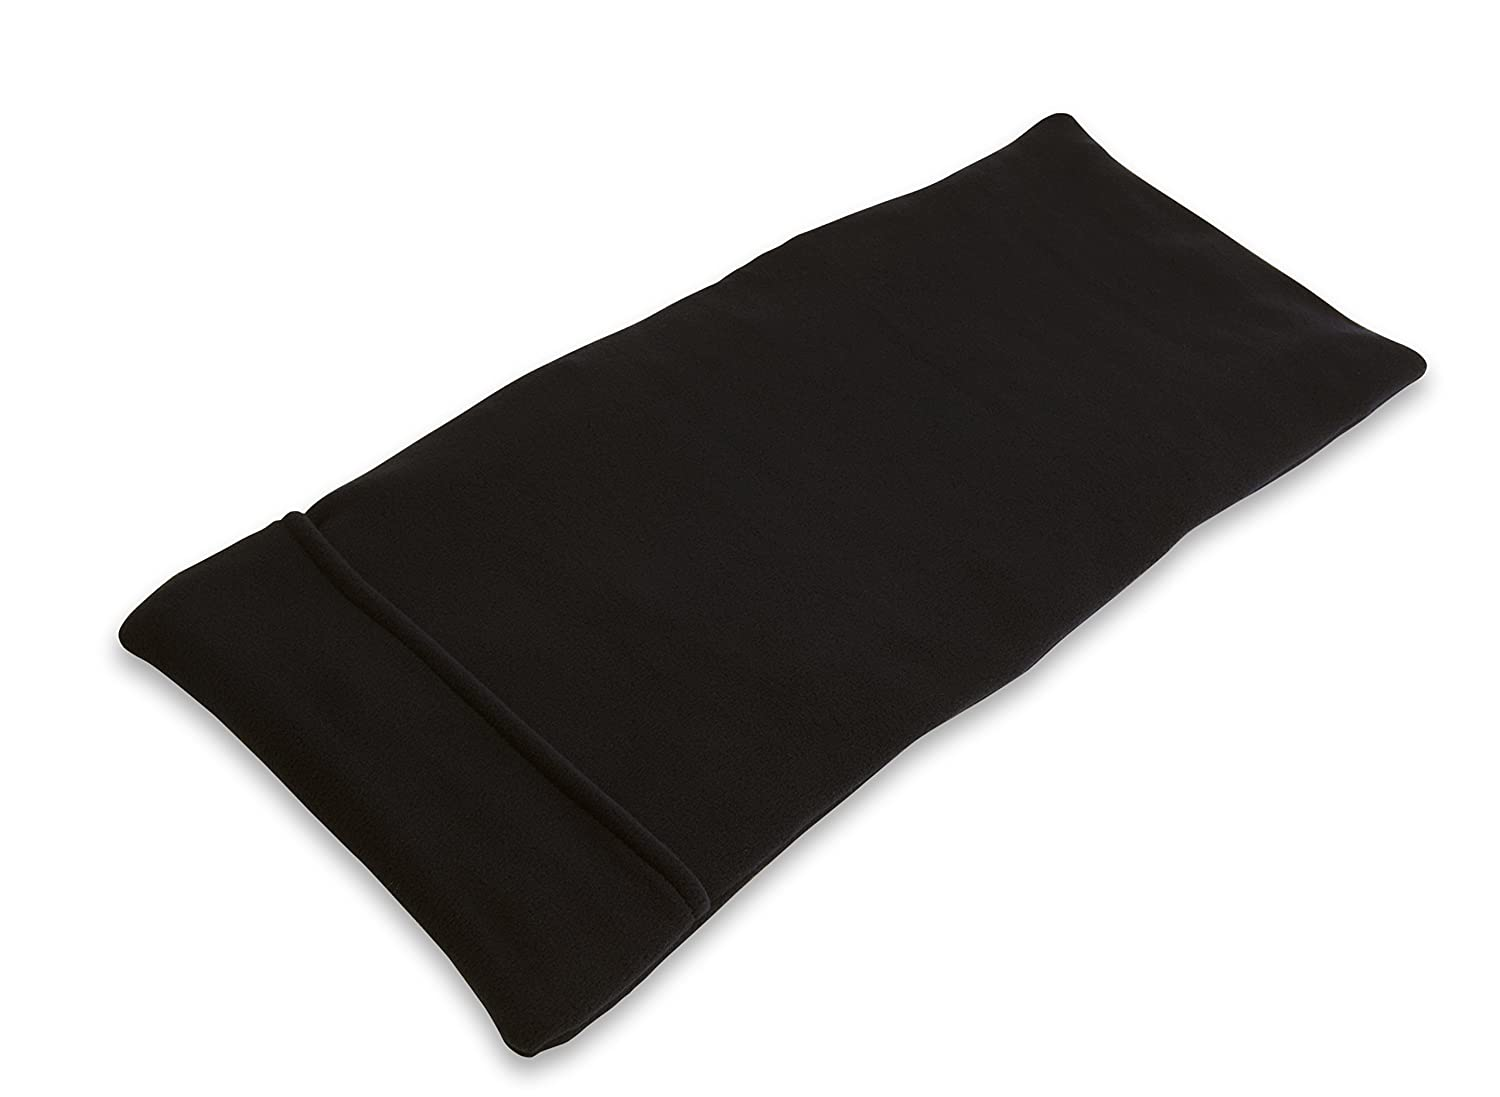 "Sunny Bay XL Body Heating Pad 10.5"" x 24"", Whole Wheat Filled, Washable Cover, Heat Therapy Pad for Sore Neck, Back & Shoulder Muscle Pain Relief – Reusable, Non-Electric Heat or Cold Compress, Black"